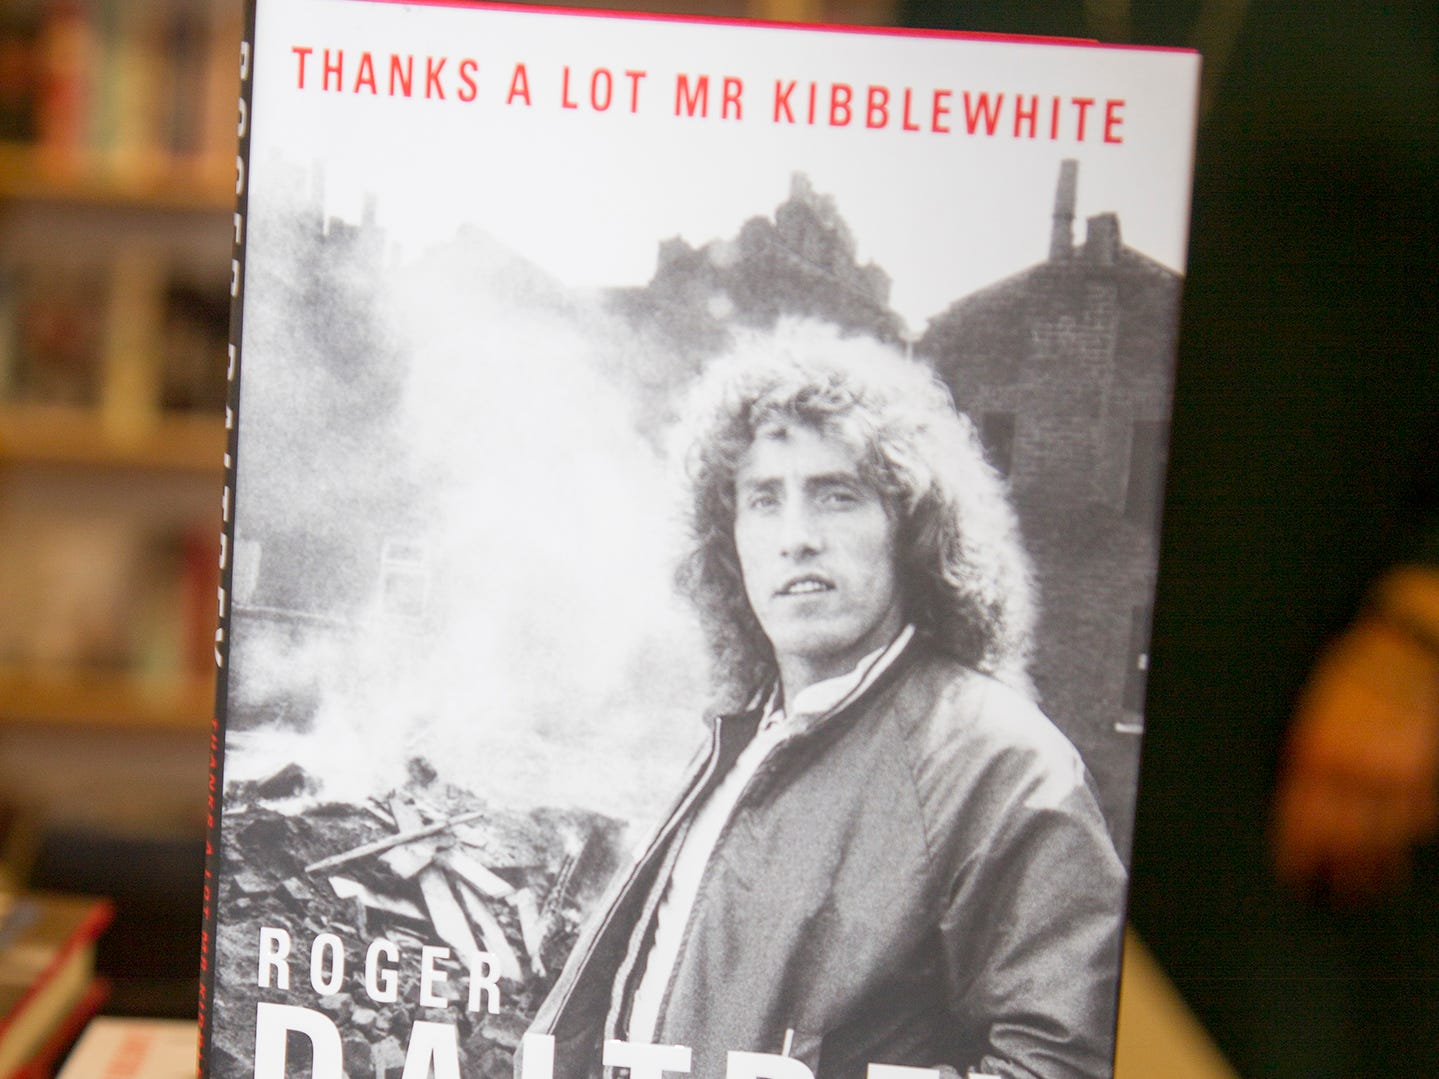 "Roger Daltrey, founding member of the band THE WHO, signed copies of his book ""Roger Daltrey: My Story"" at Bookends in Ridgewood. 10/25/2018"